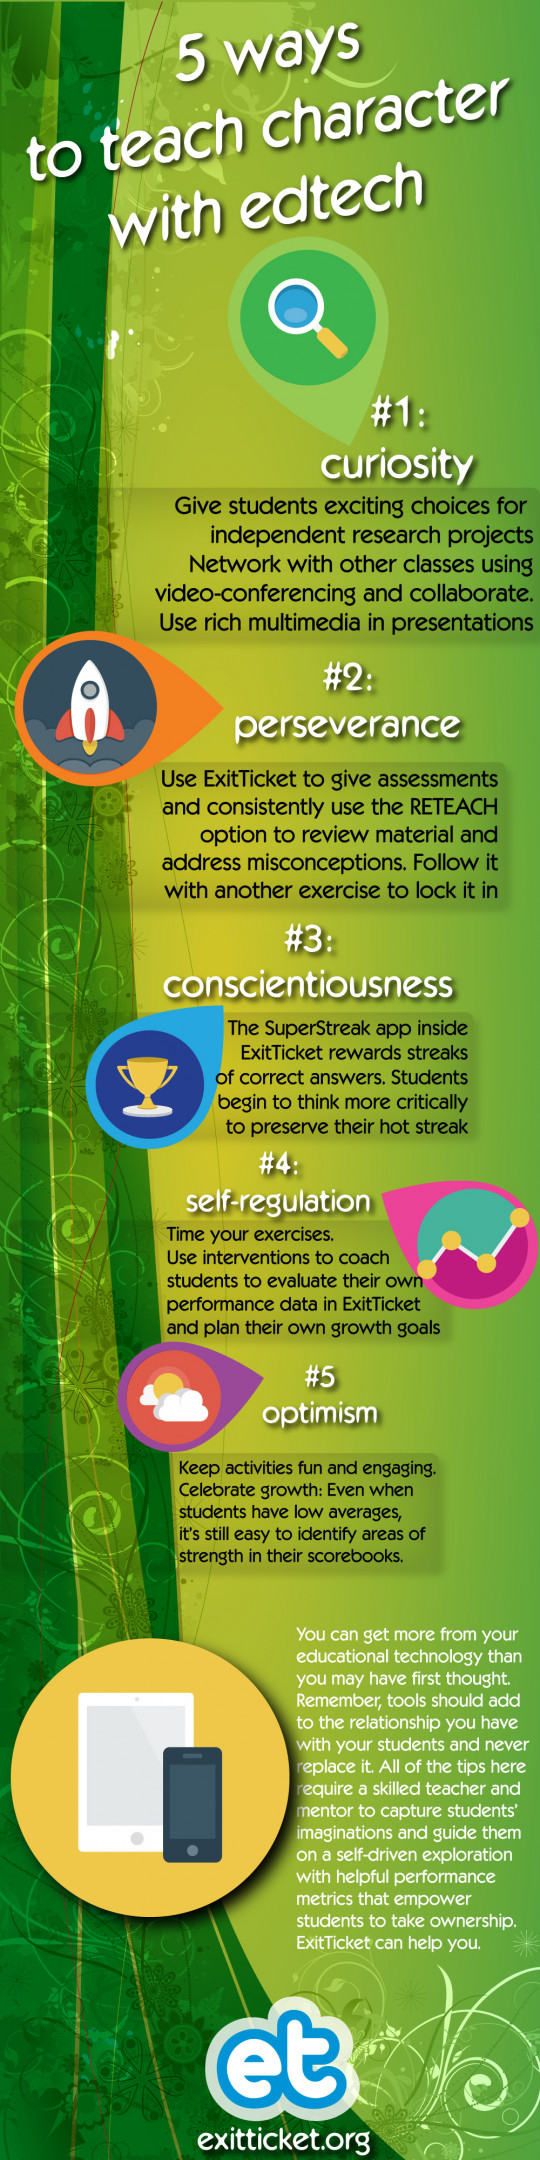 Infographic: 5 Ways to Teach Character with Edtech